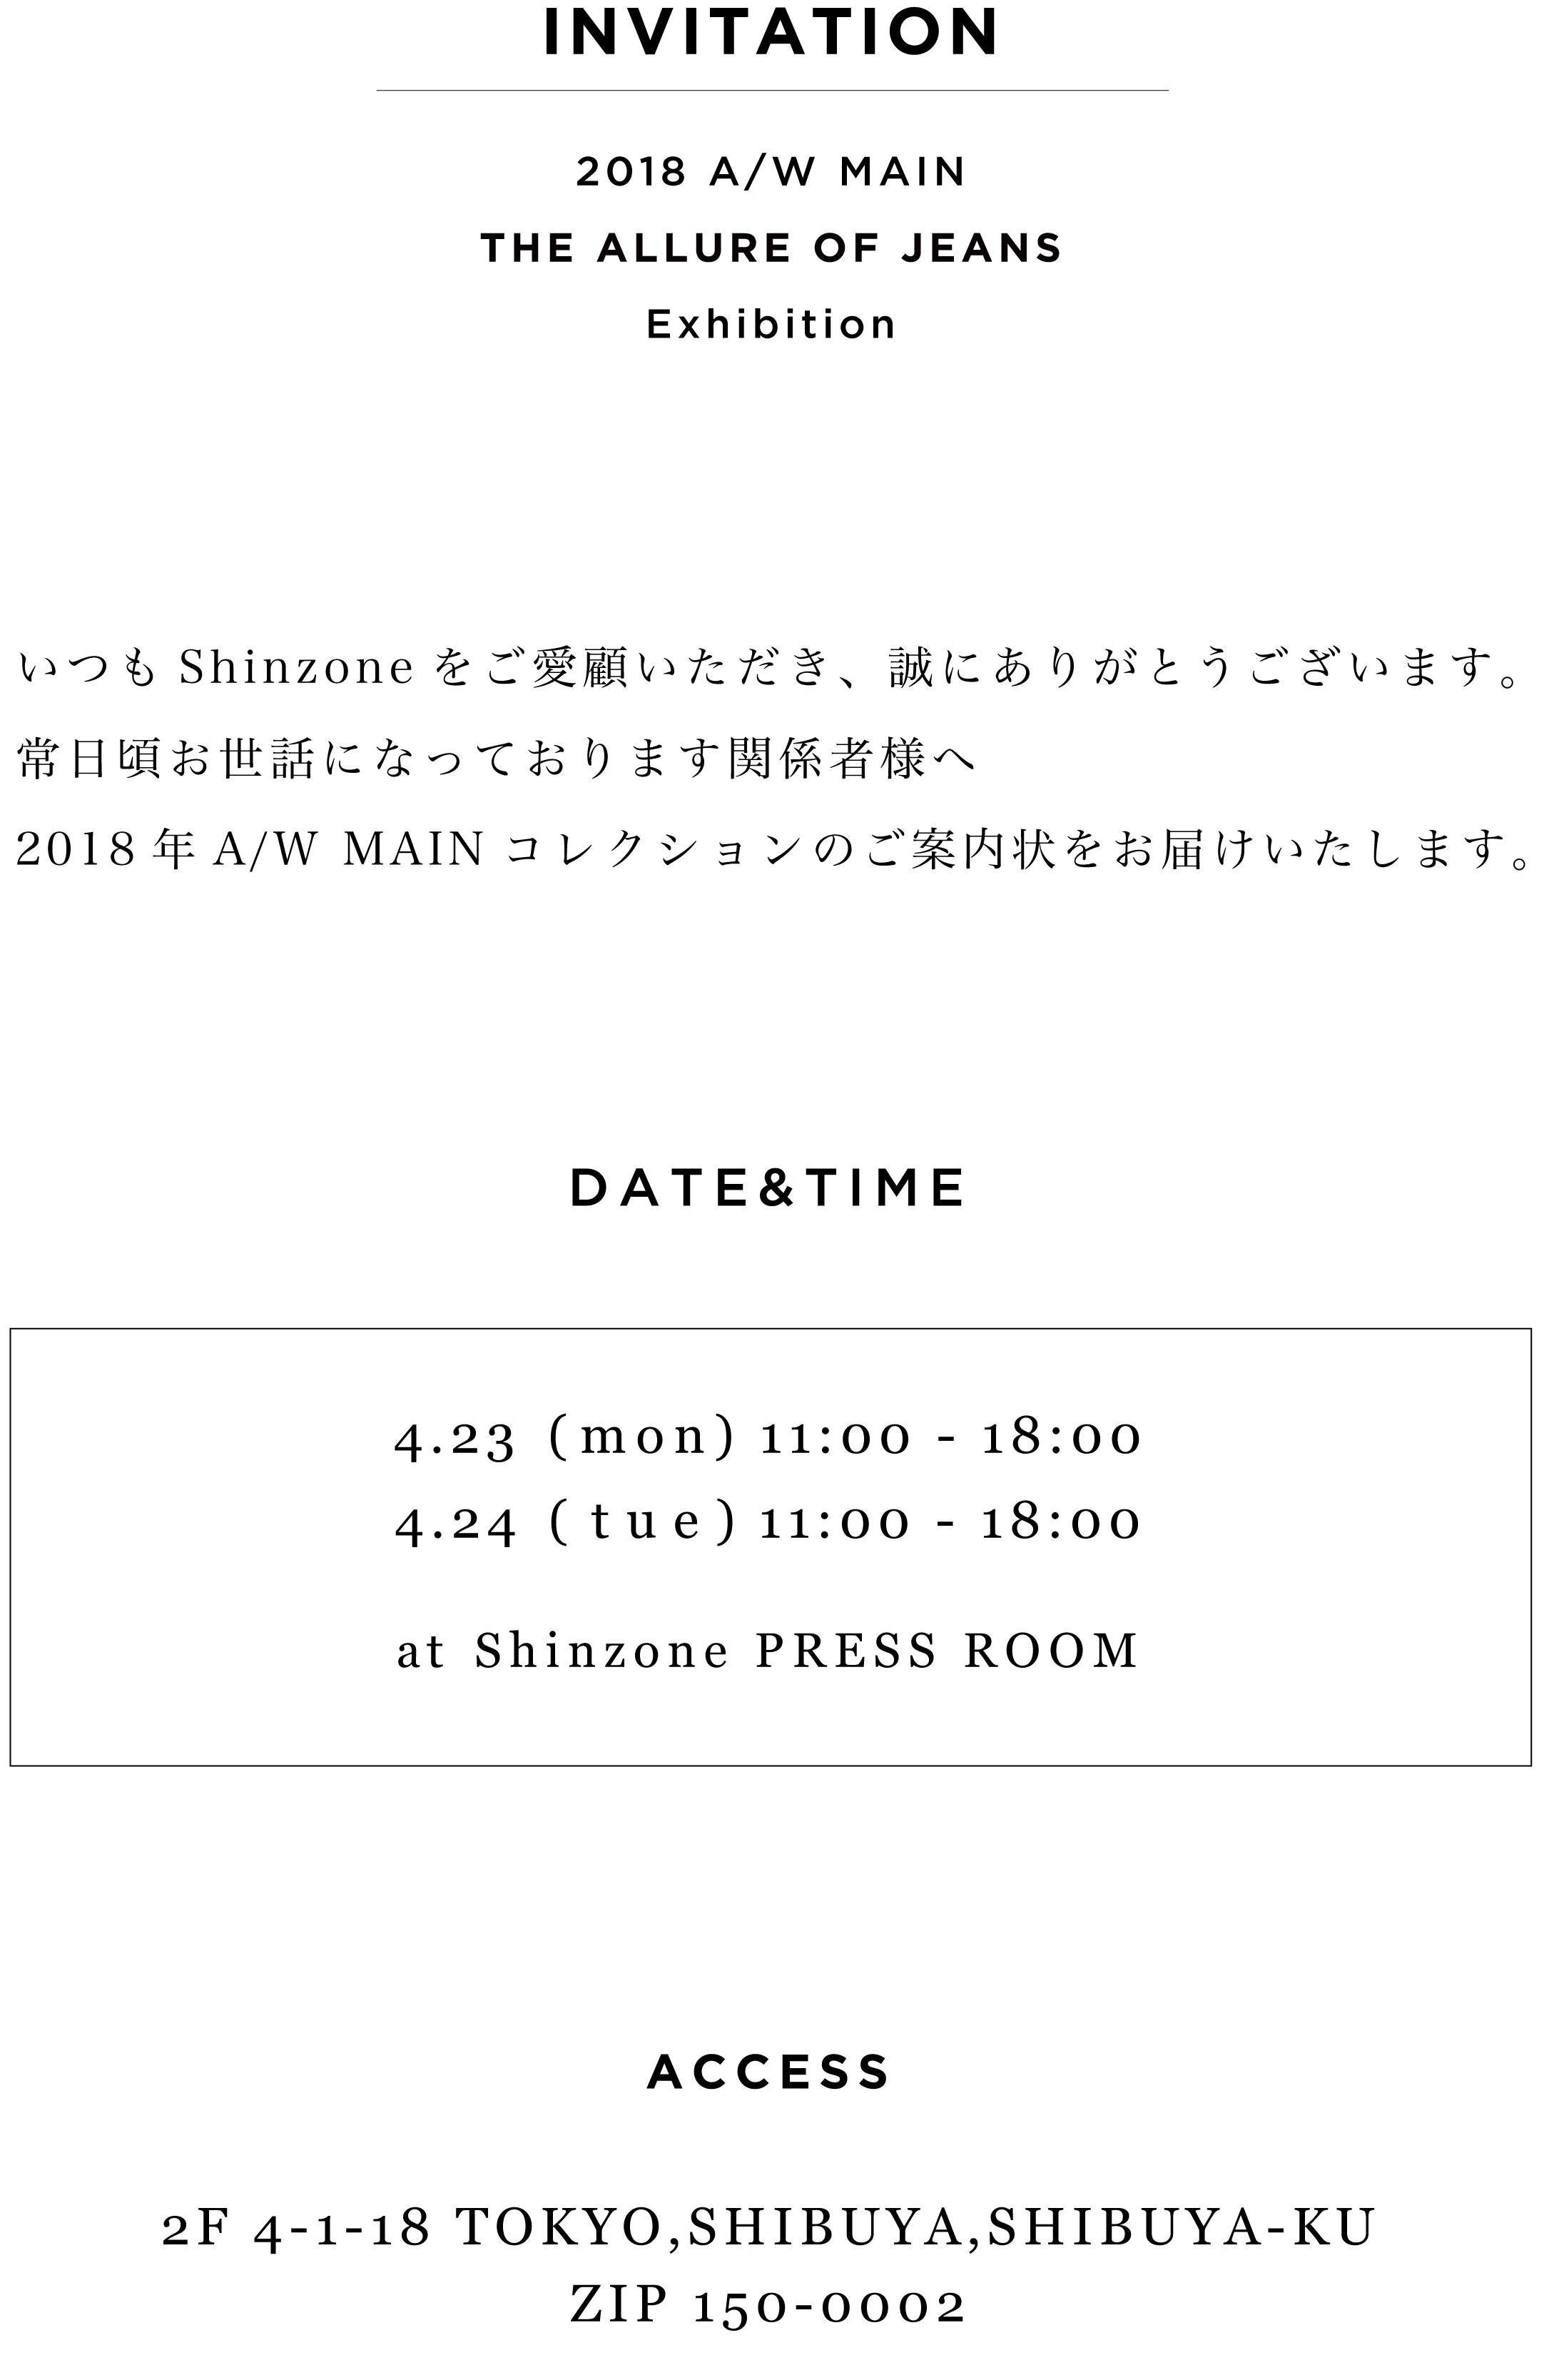 2018SS Main Exhibition